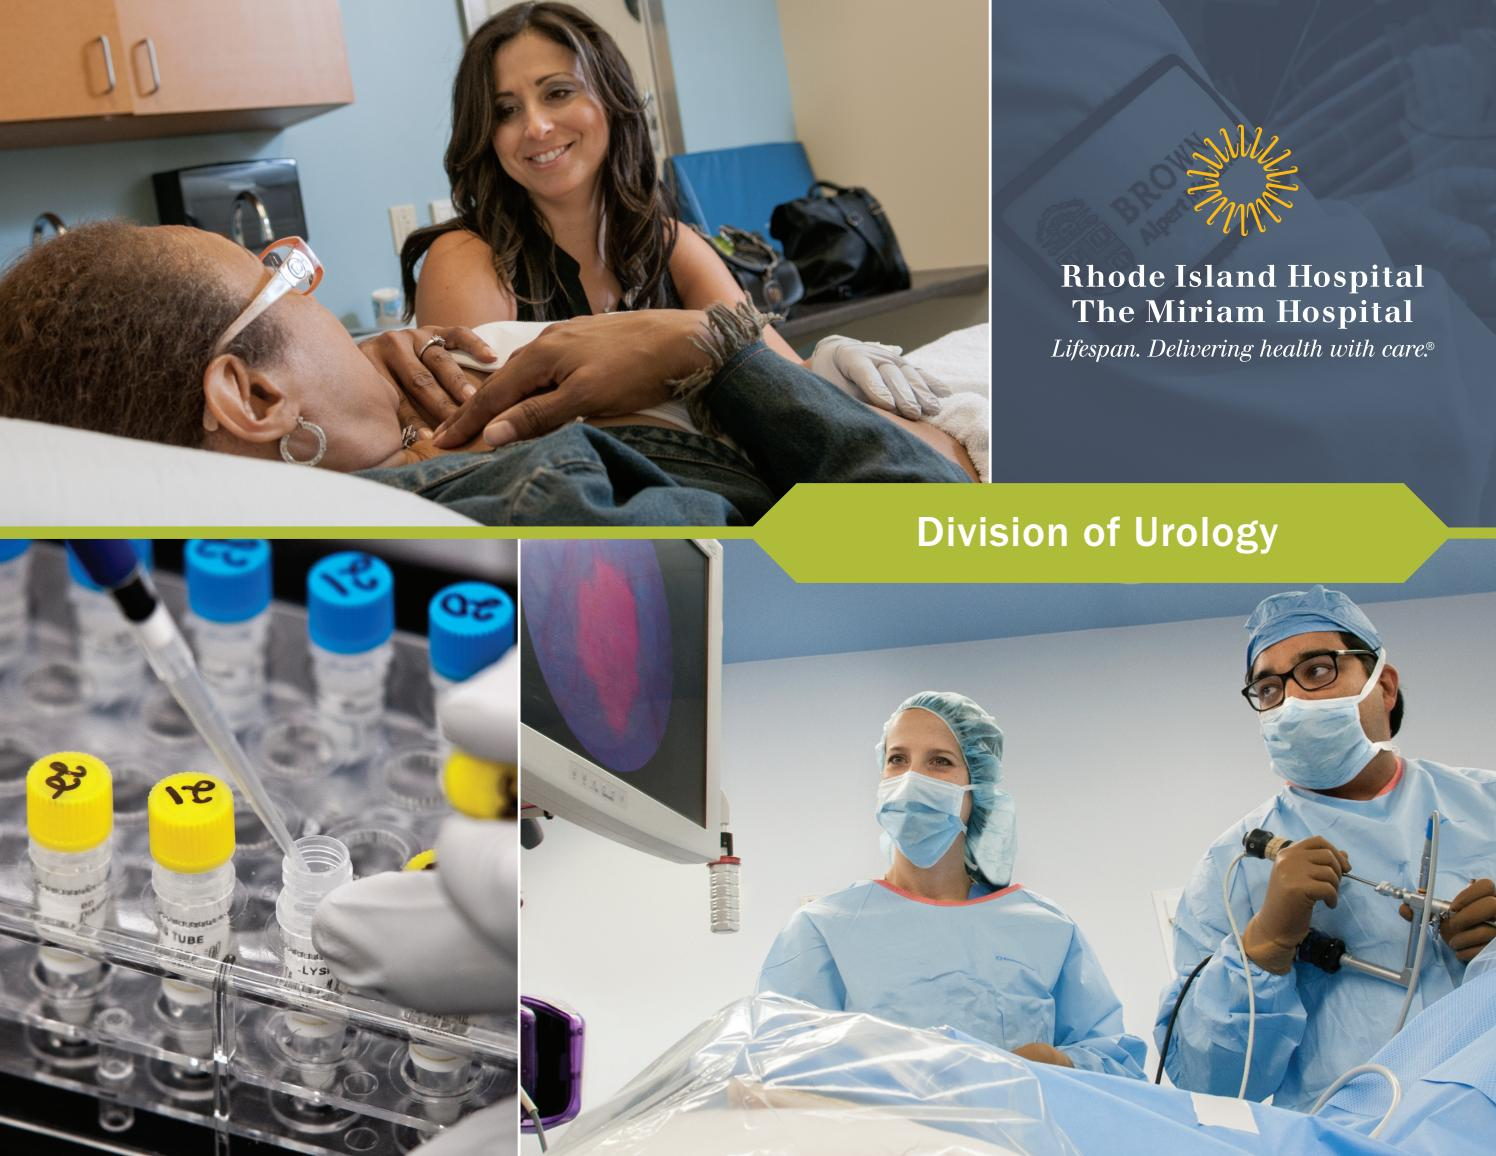 Lifespan Division of Urology at Rhode Island Hospital and